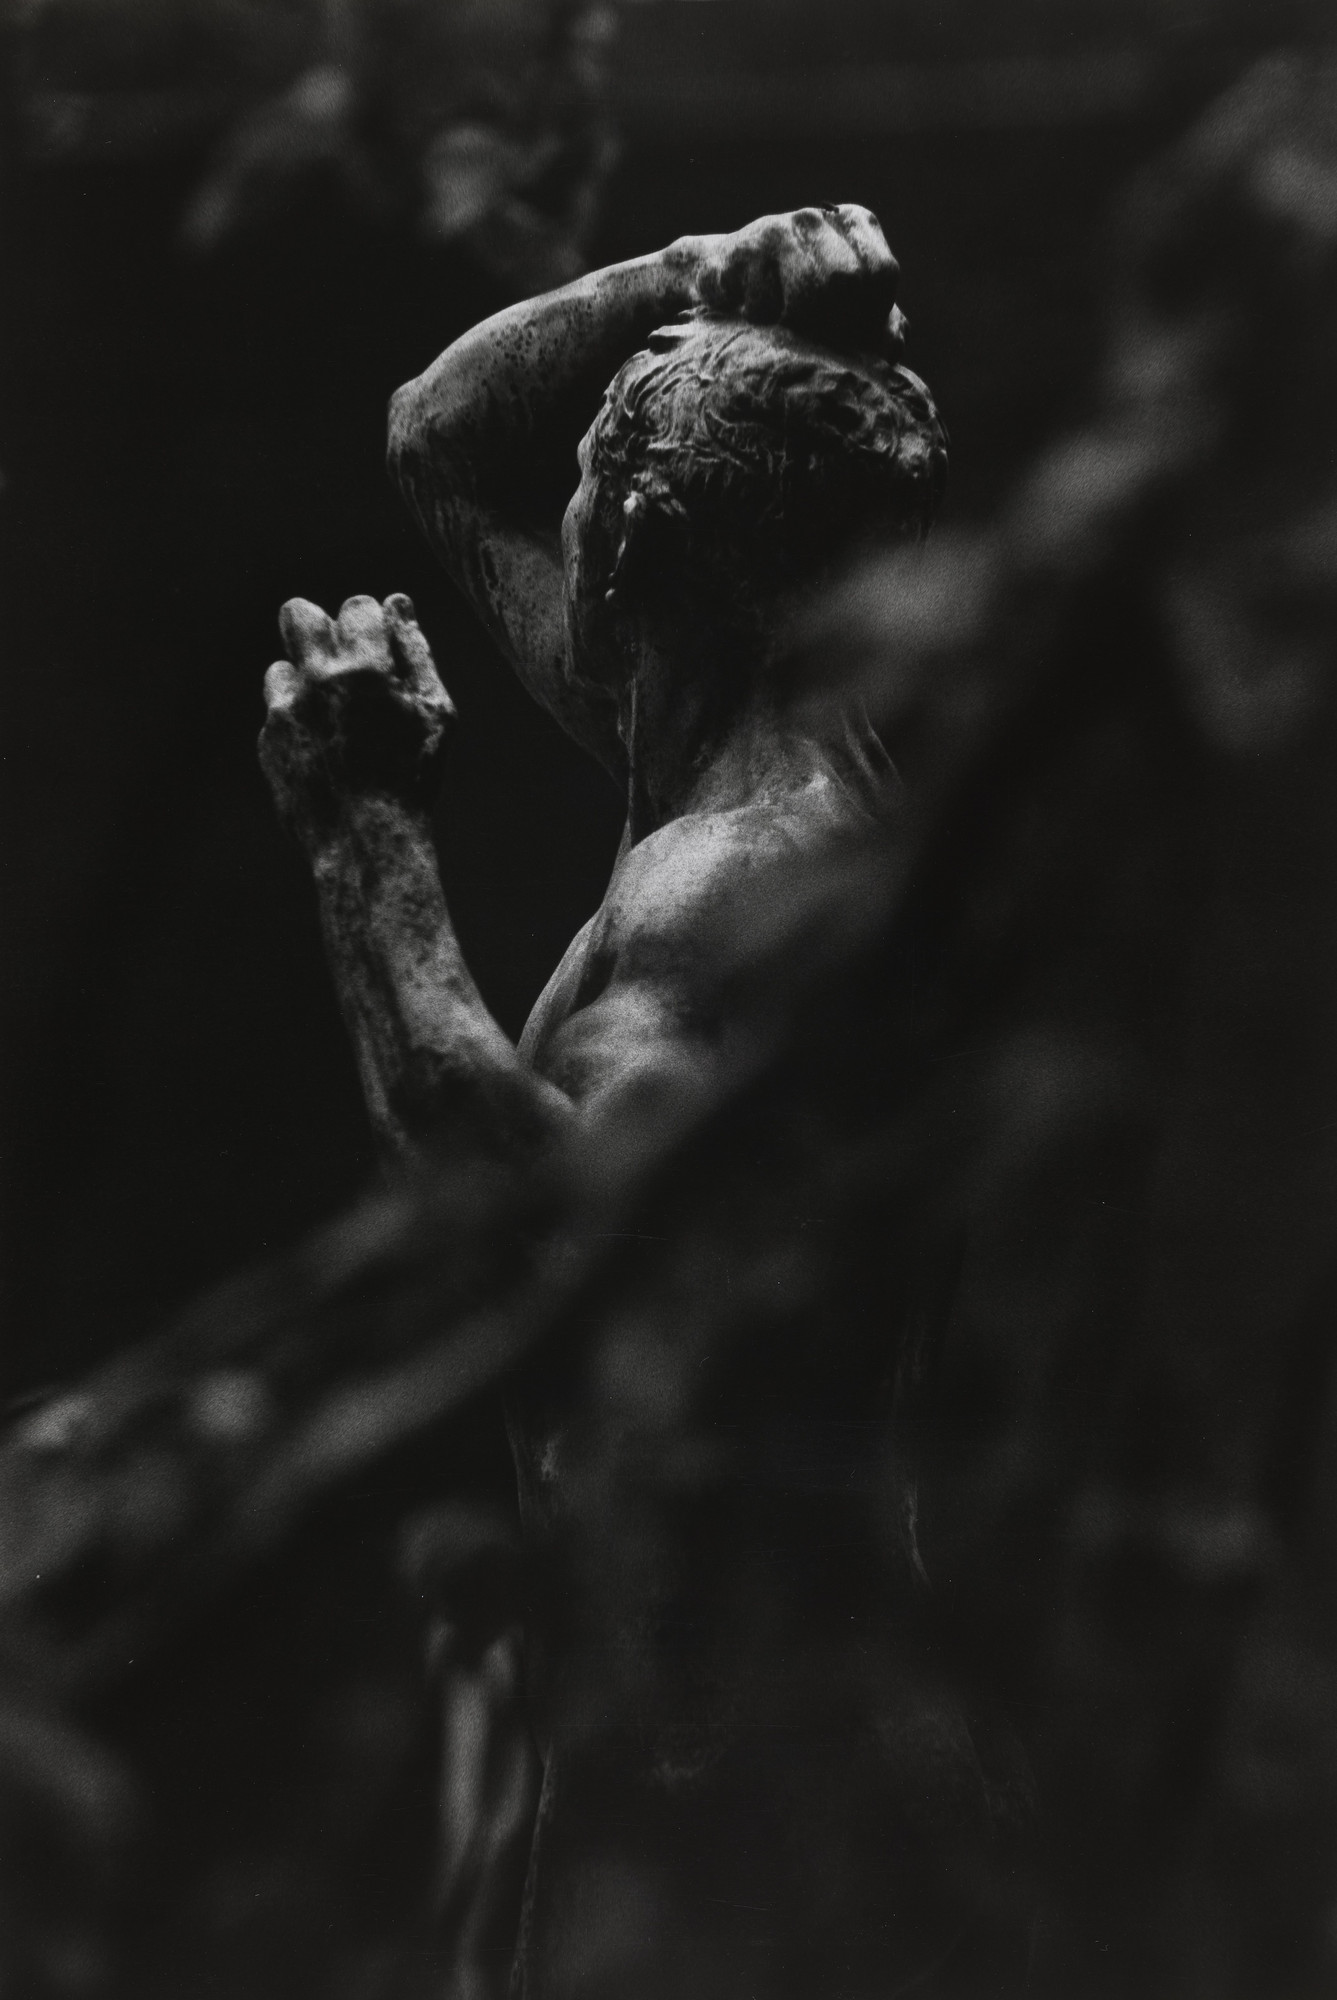 Erich Hartmann. The Age of Bronze. 1963